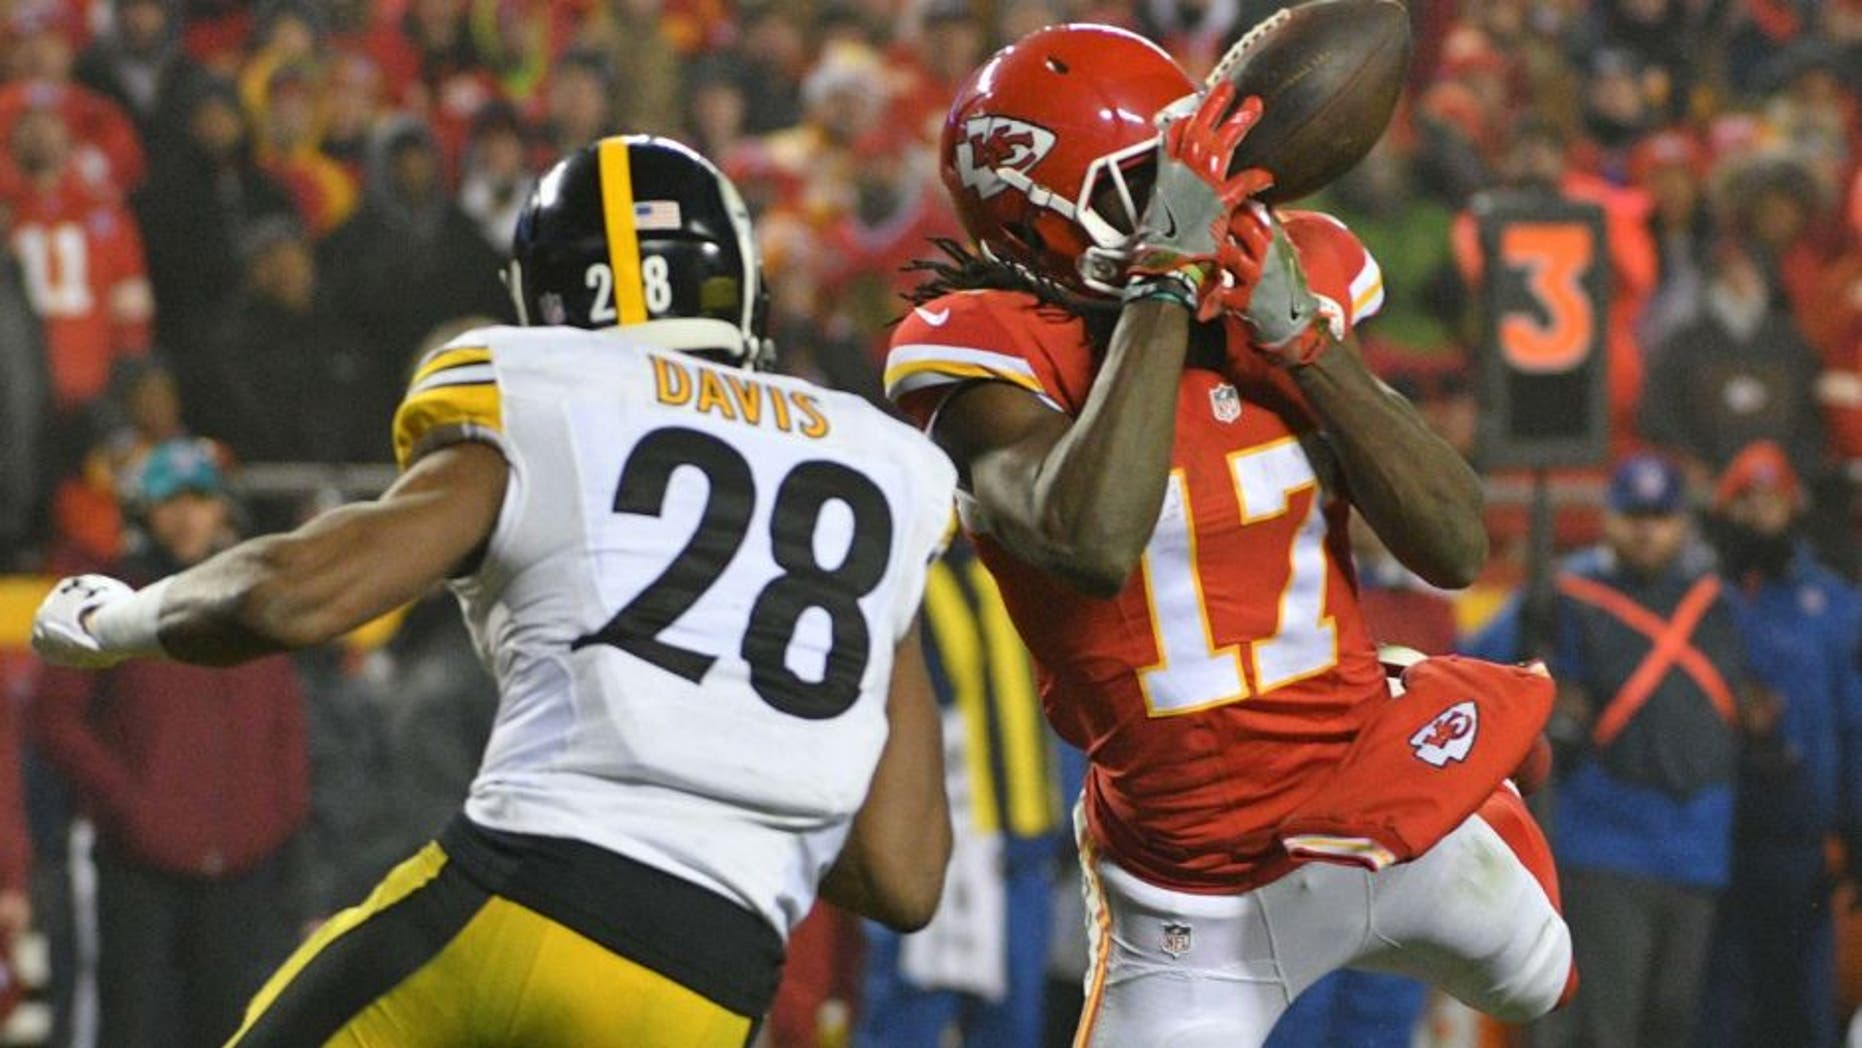 Jan 15, 2017; Kansas City, MO, USA; Kansas City Chiefs wide receiver Chris Conley (17) attempts a catch as Pittsburgh Steelers defensive back Cortez Allen (28) defends during the fourth quarter in the AFC Divisional playoff game at Arrowhead Stadium. Mandatory Credit: Denny Medley-USA TODAY Sports